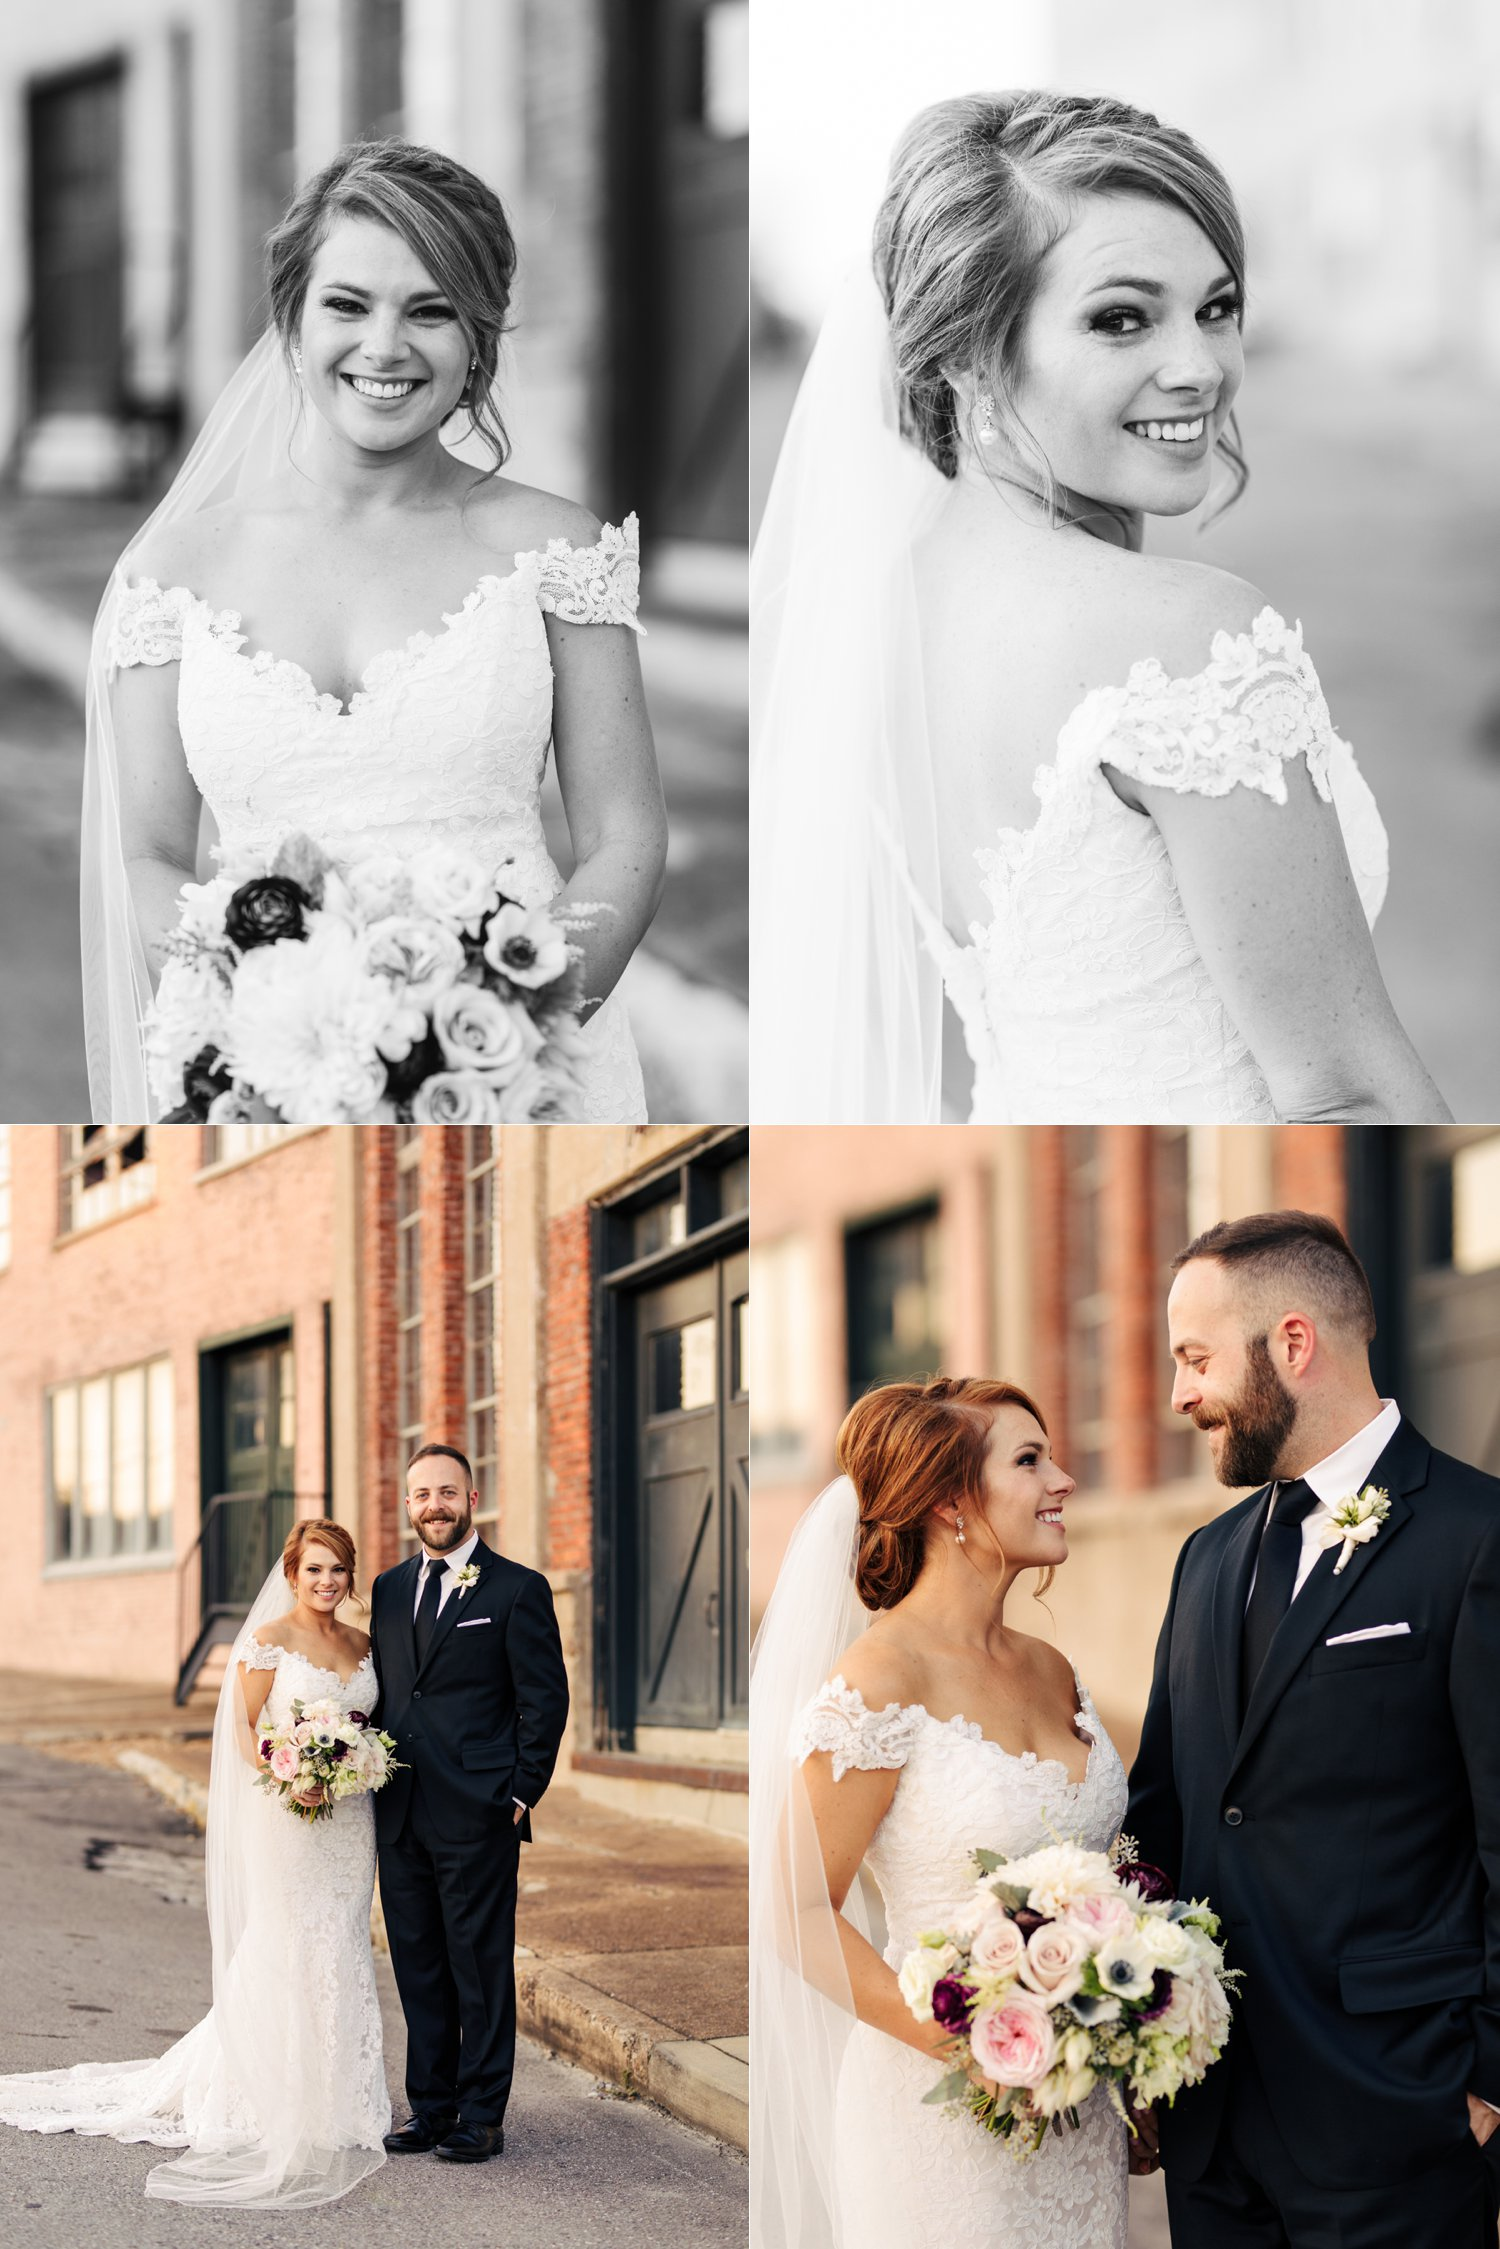 CK-Photo-Nashville-engagement-wedding-photographer-neuhoff-plant